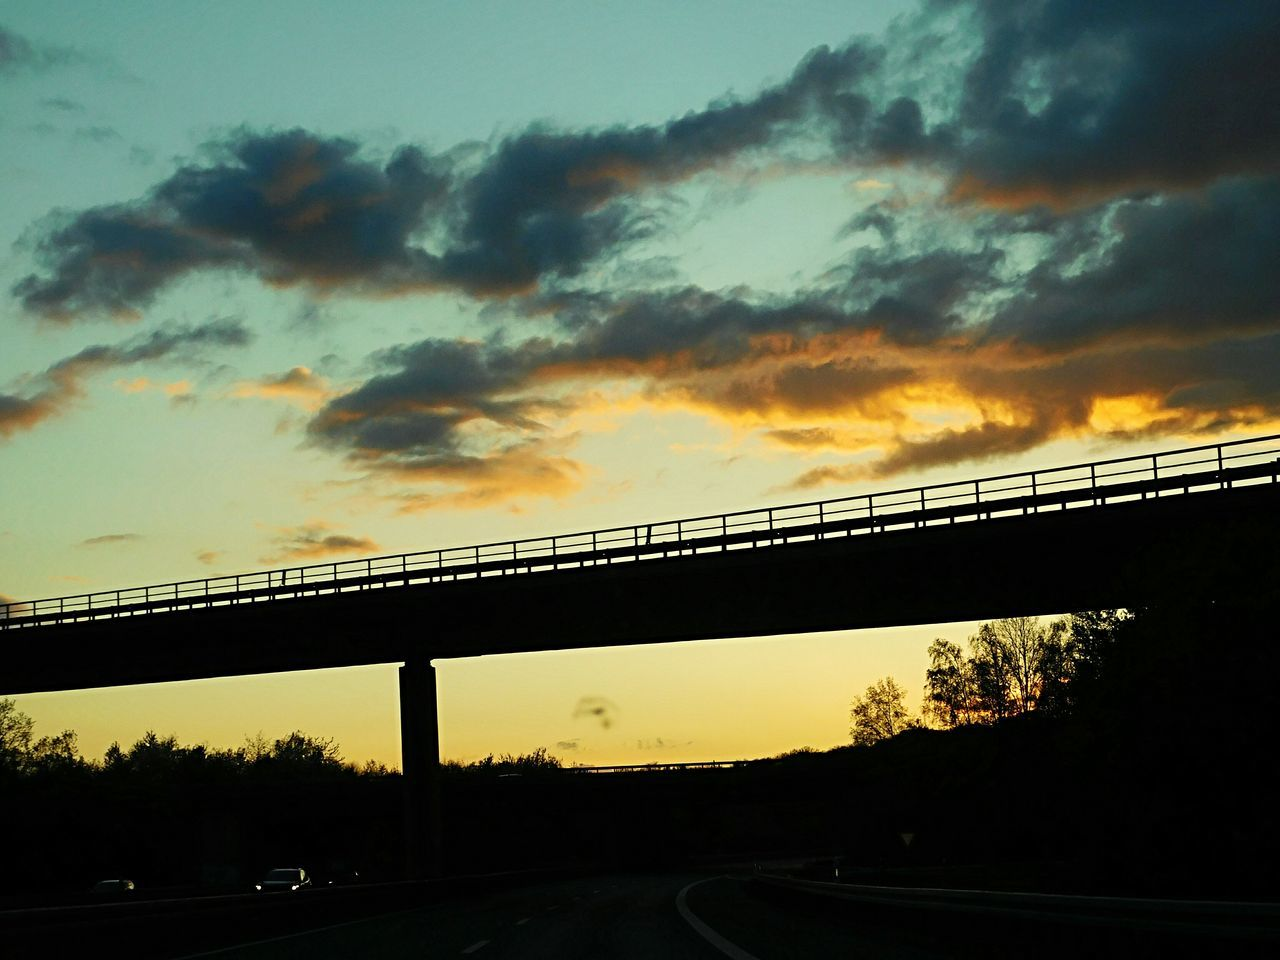 bridge - man made structure, connection, transportation, sunset, engineering, built structure, sky, silhouette, architecture, cloud - sky, no people, road, nature, tree, outdoors, day